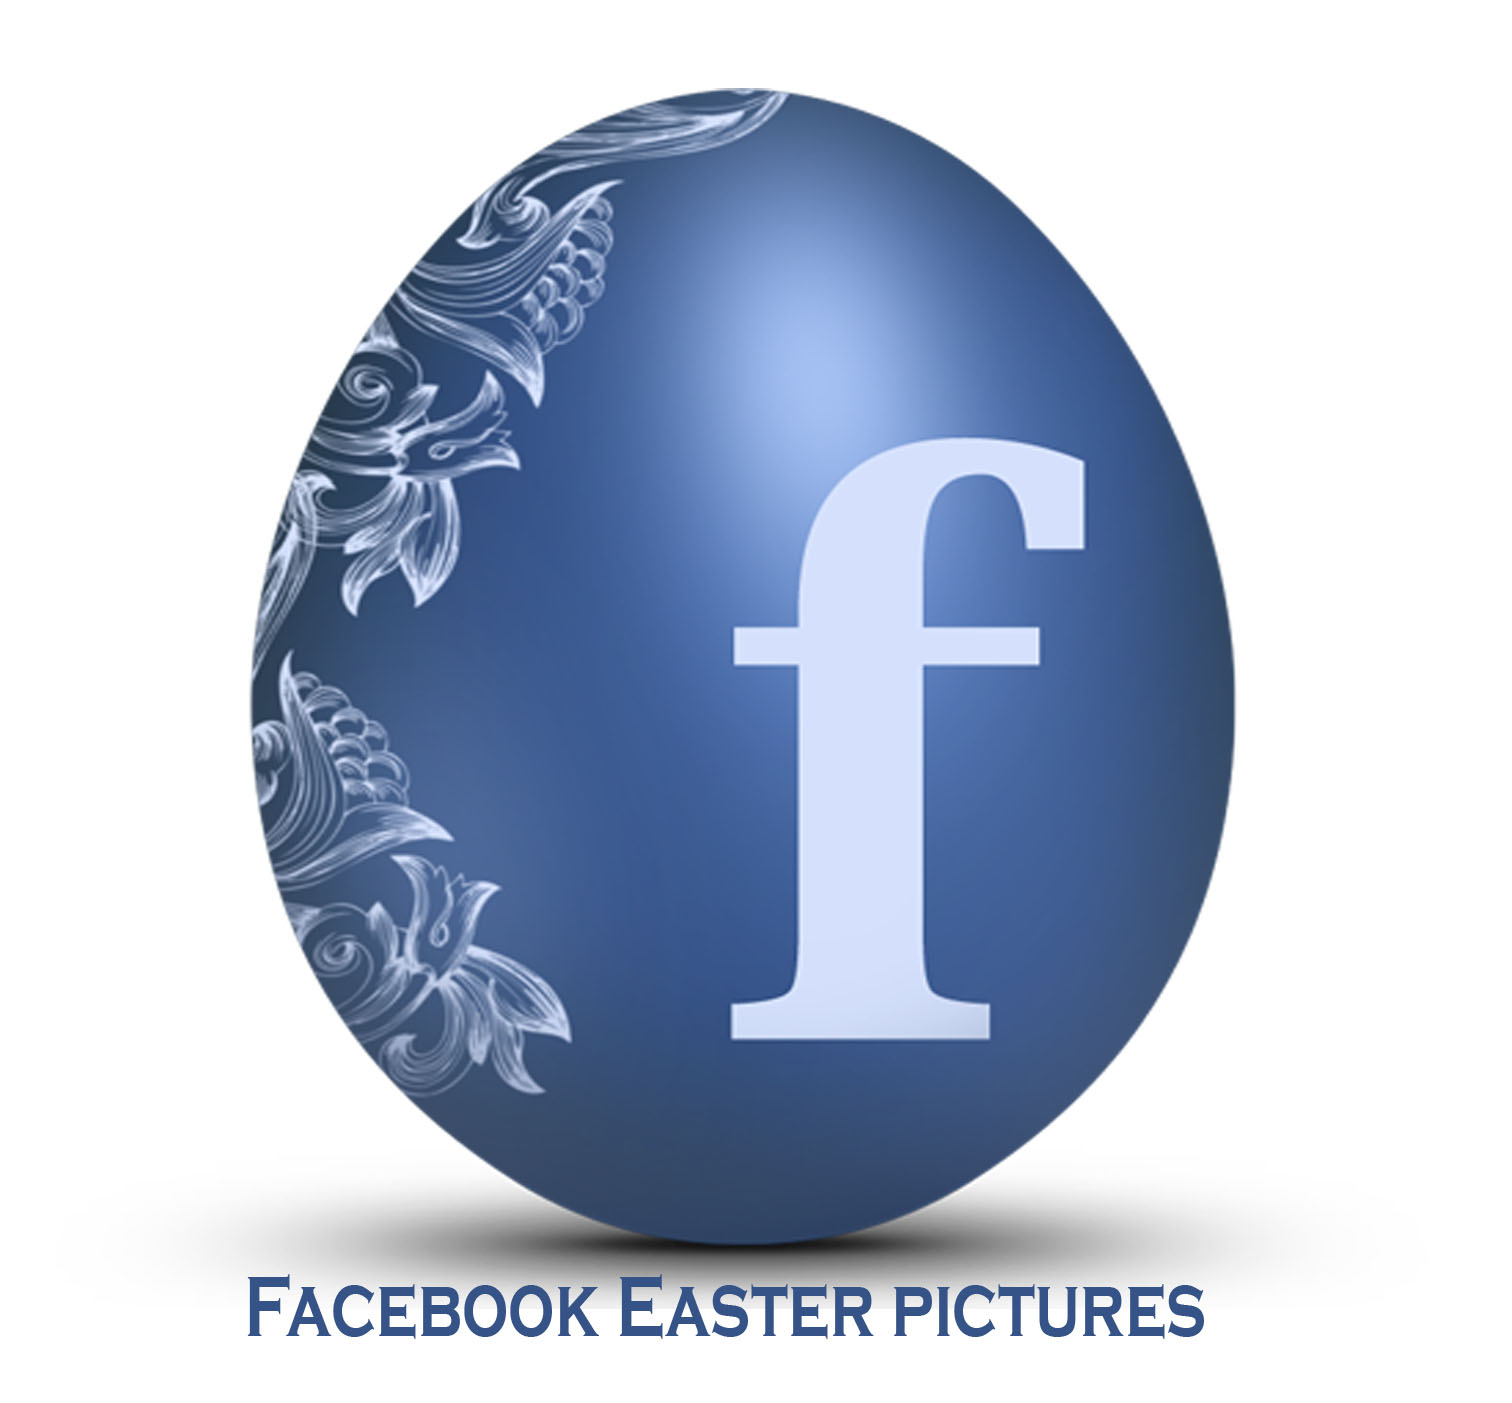 Facebook Easter pictures - Facebook Easter